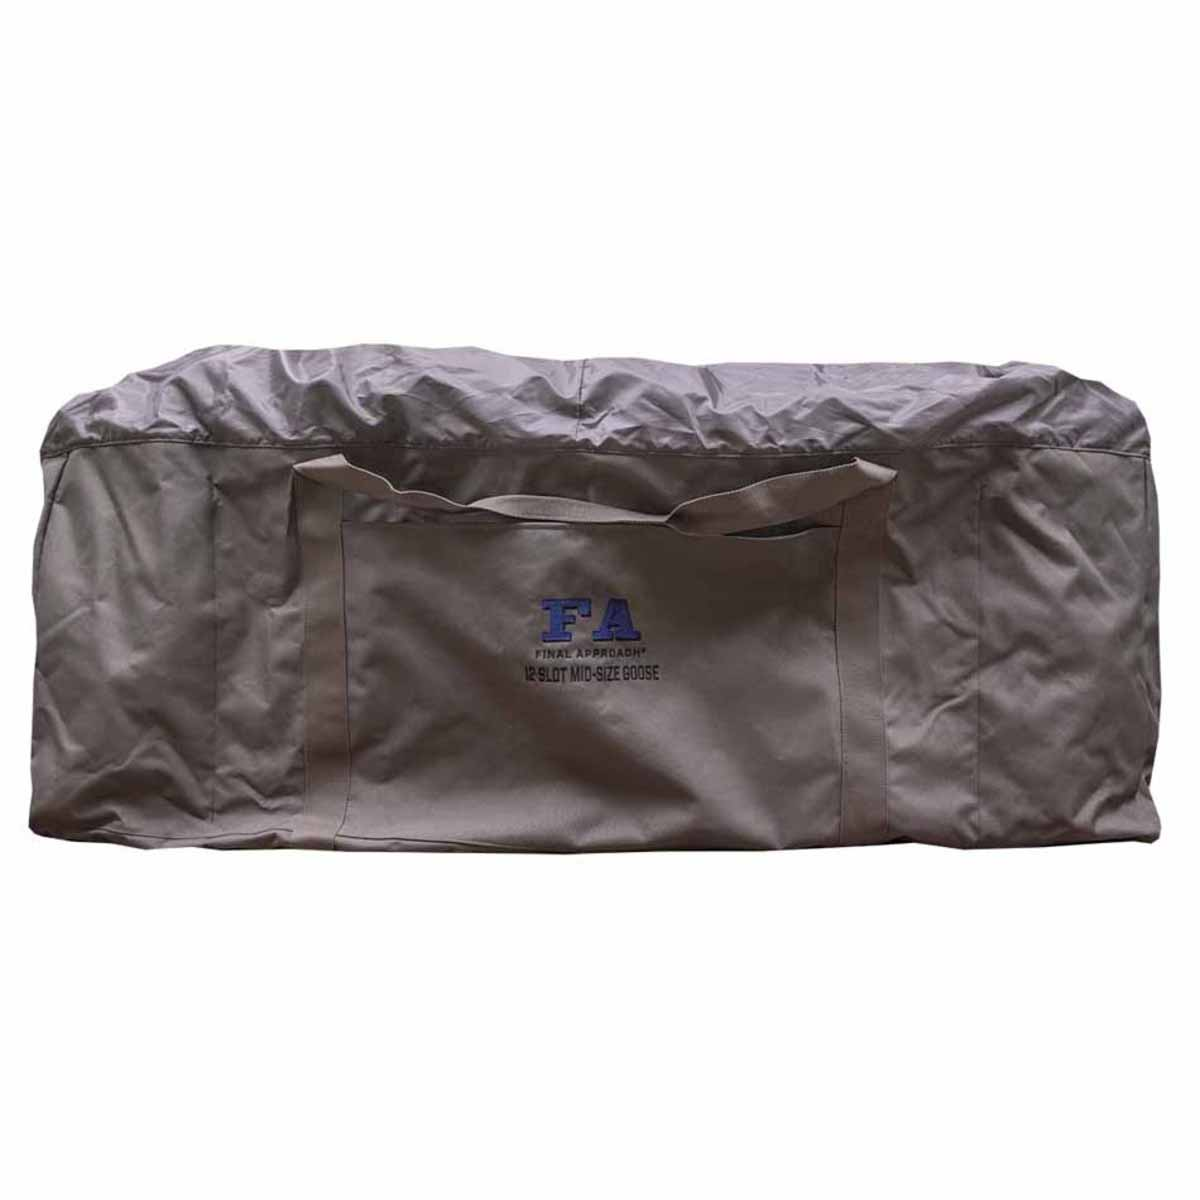 Final Approach 12-Slot Mid-Size Goose Bag_1.jpg